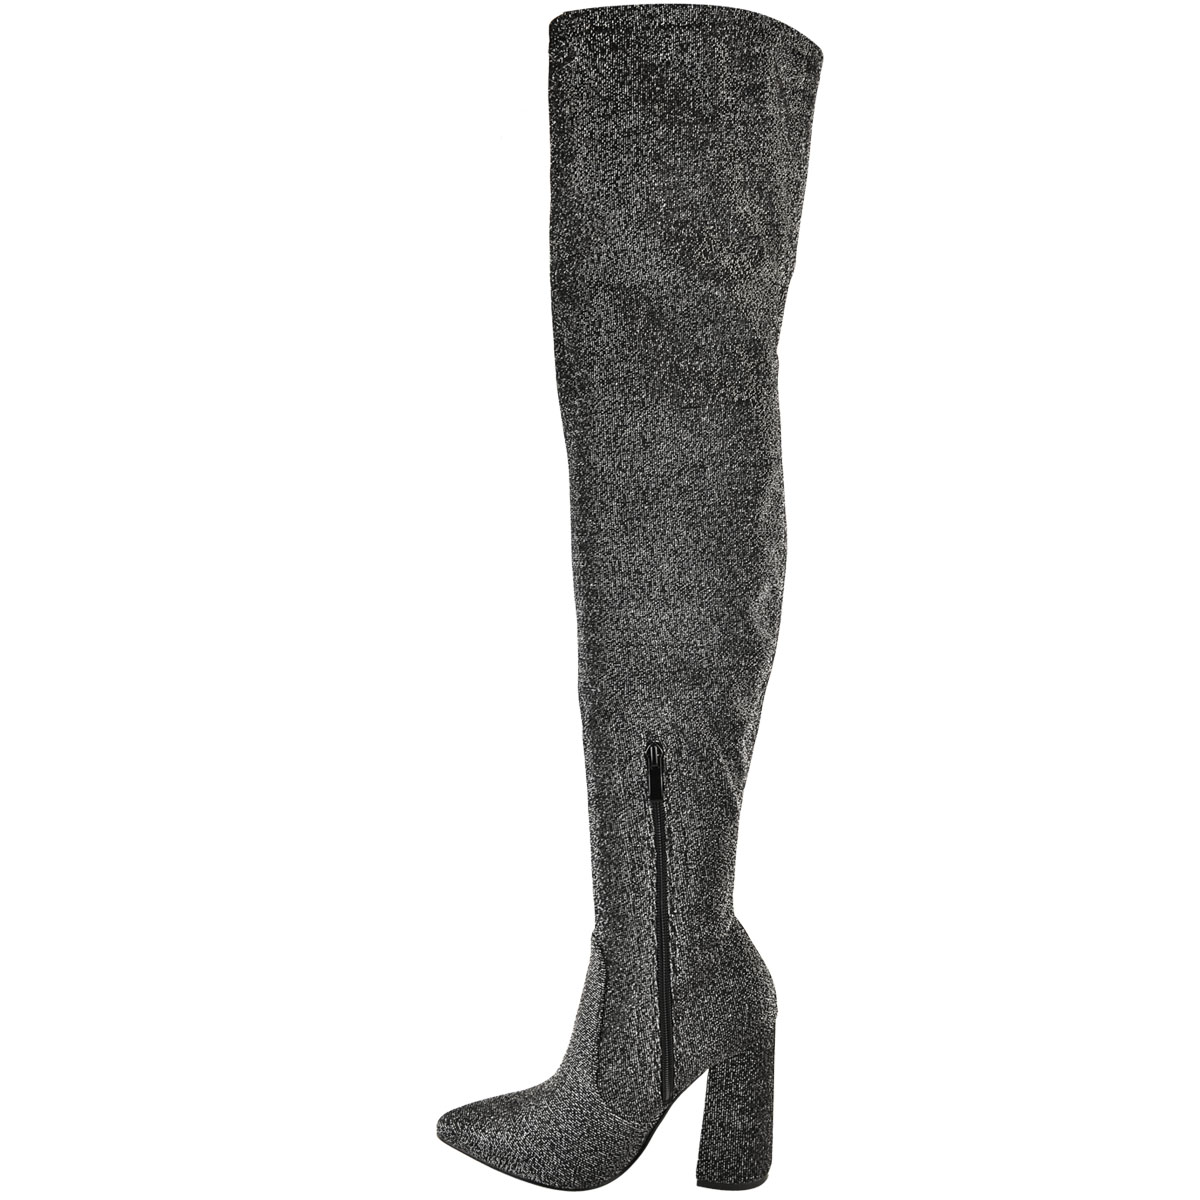 Womens-Ladies-Thigh-High-Boots-Lycra-Over-The-Knee-Pointy-Block-High-Heels-Size Indexbild 25